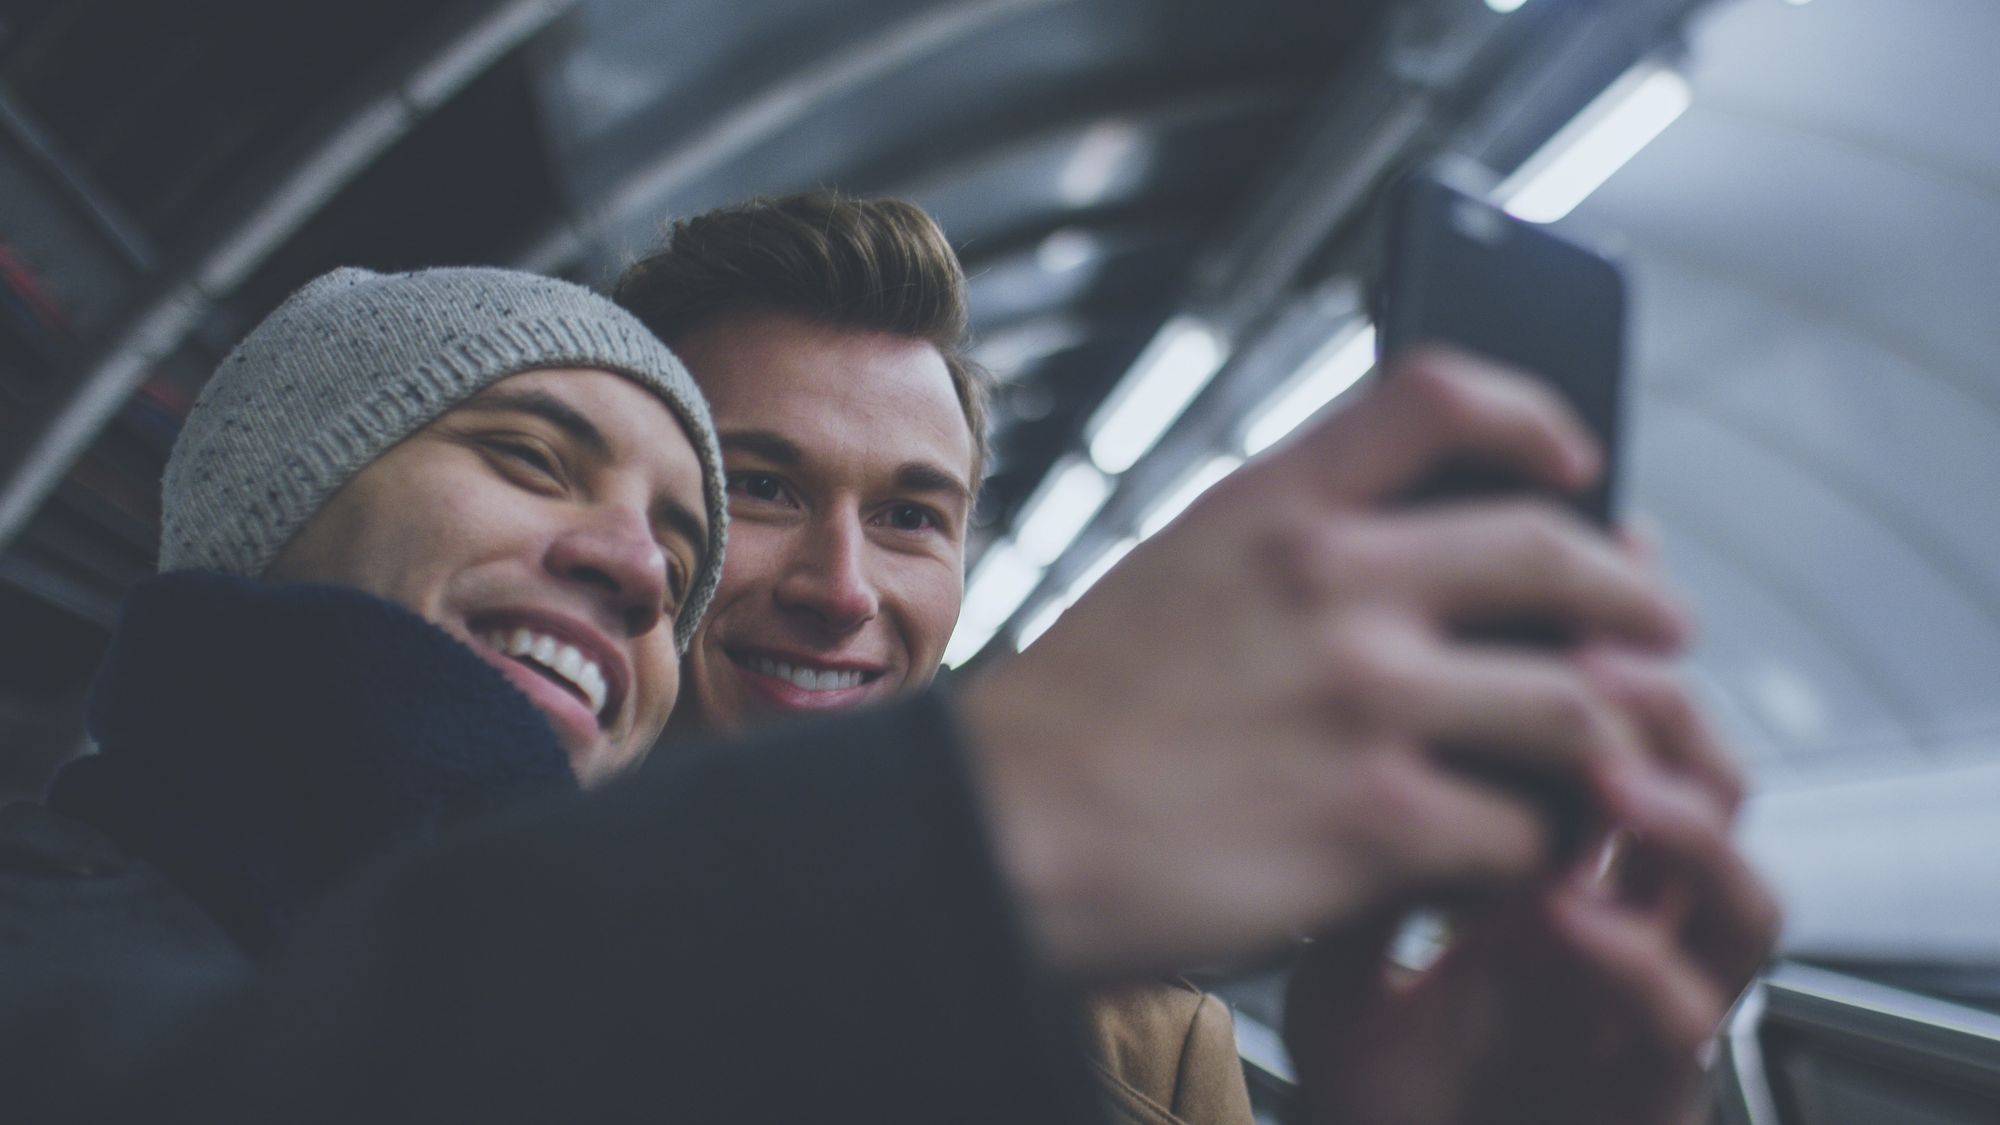 Couple_Taking_Selfie_In_Train_Station  1